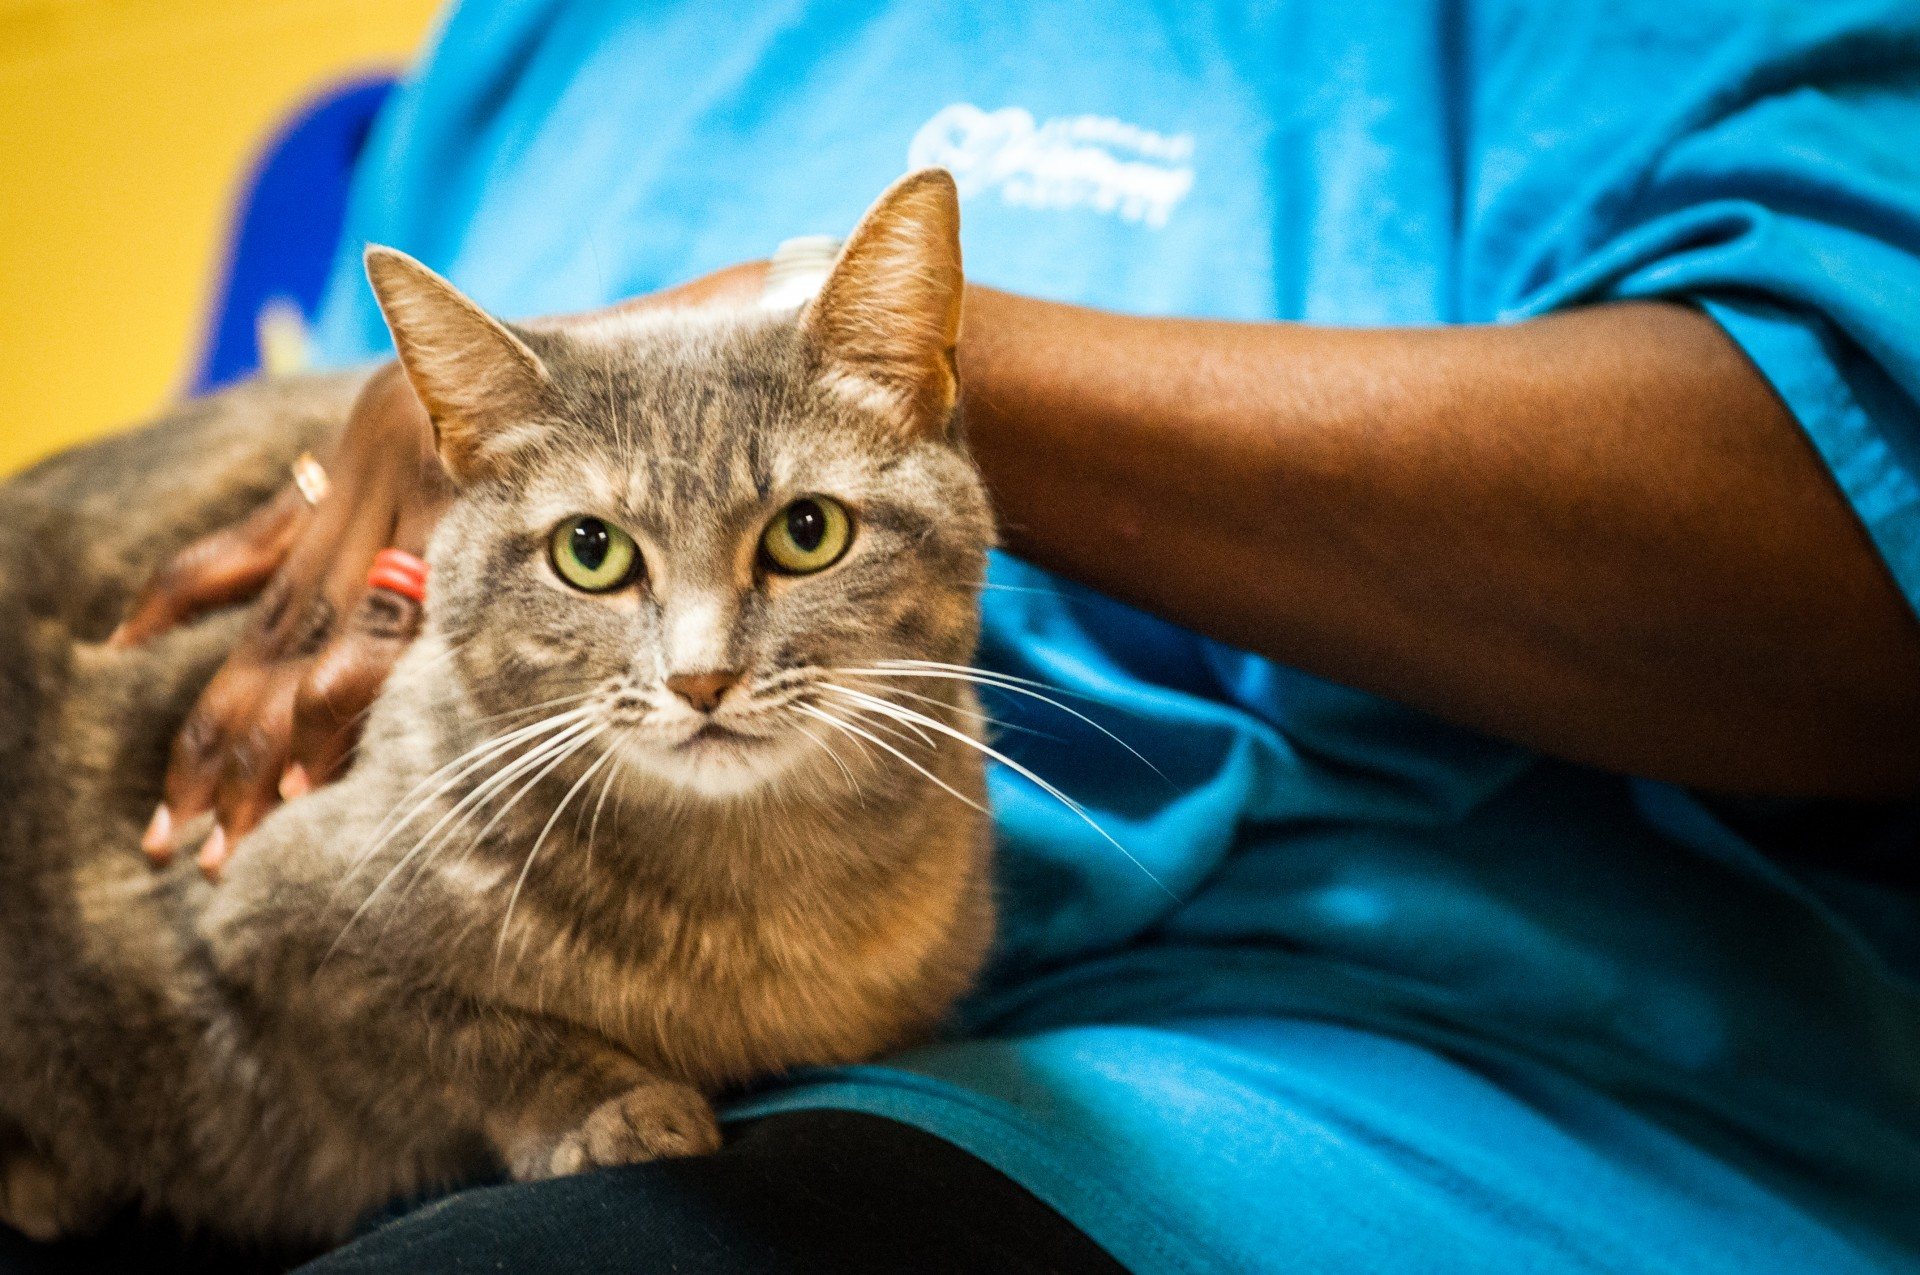 The Lawrence Humane Society has cared for more than 40,000 animals in the past few years alone!